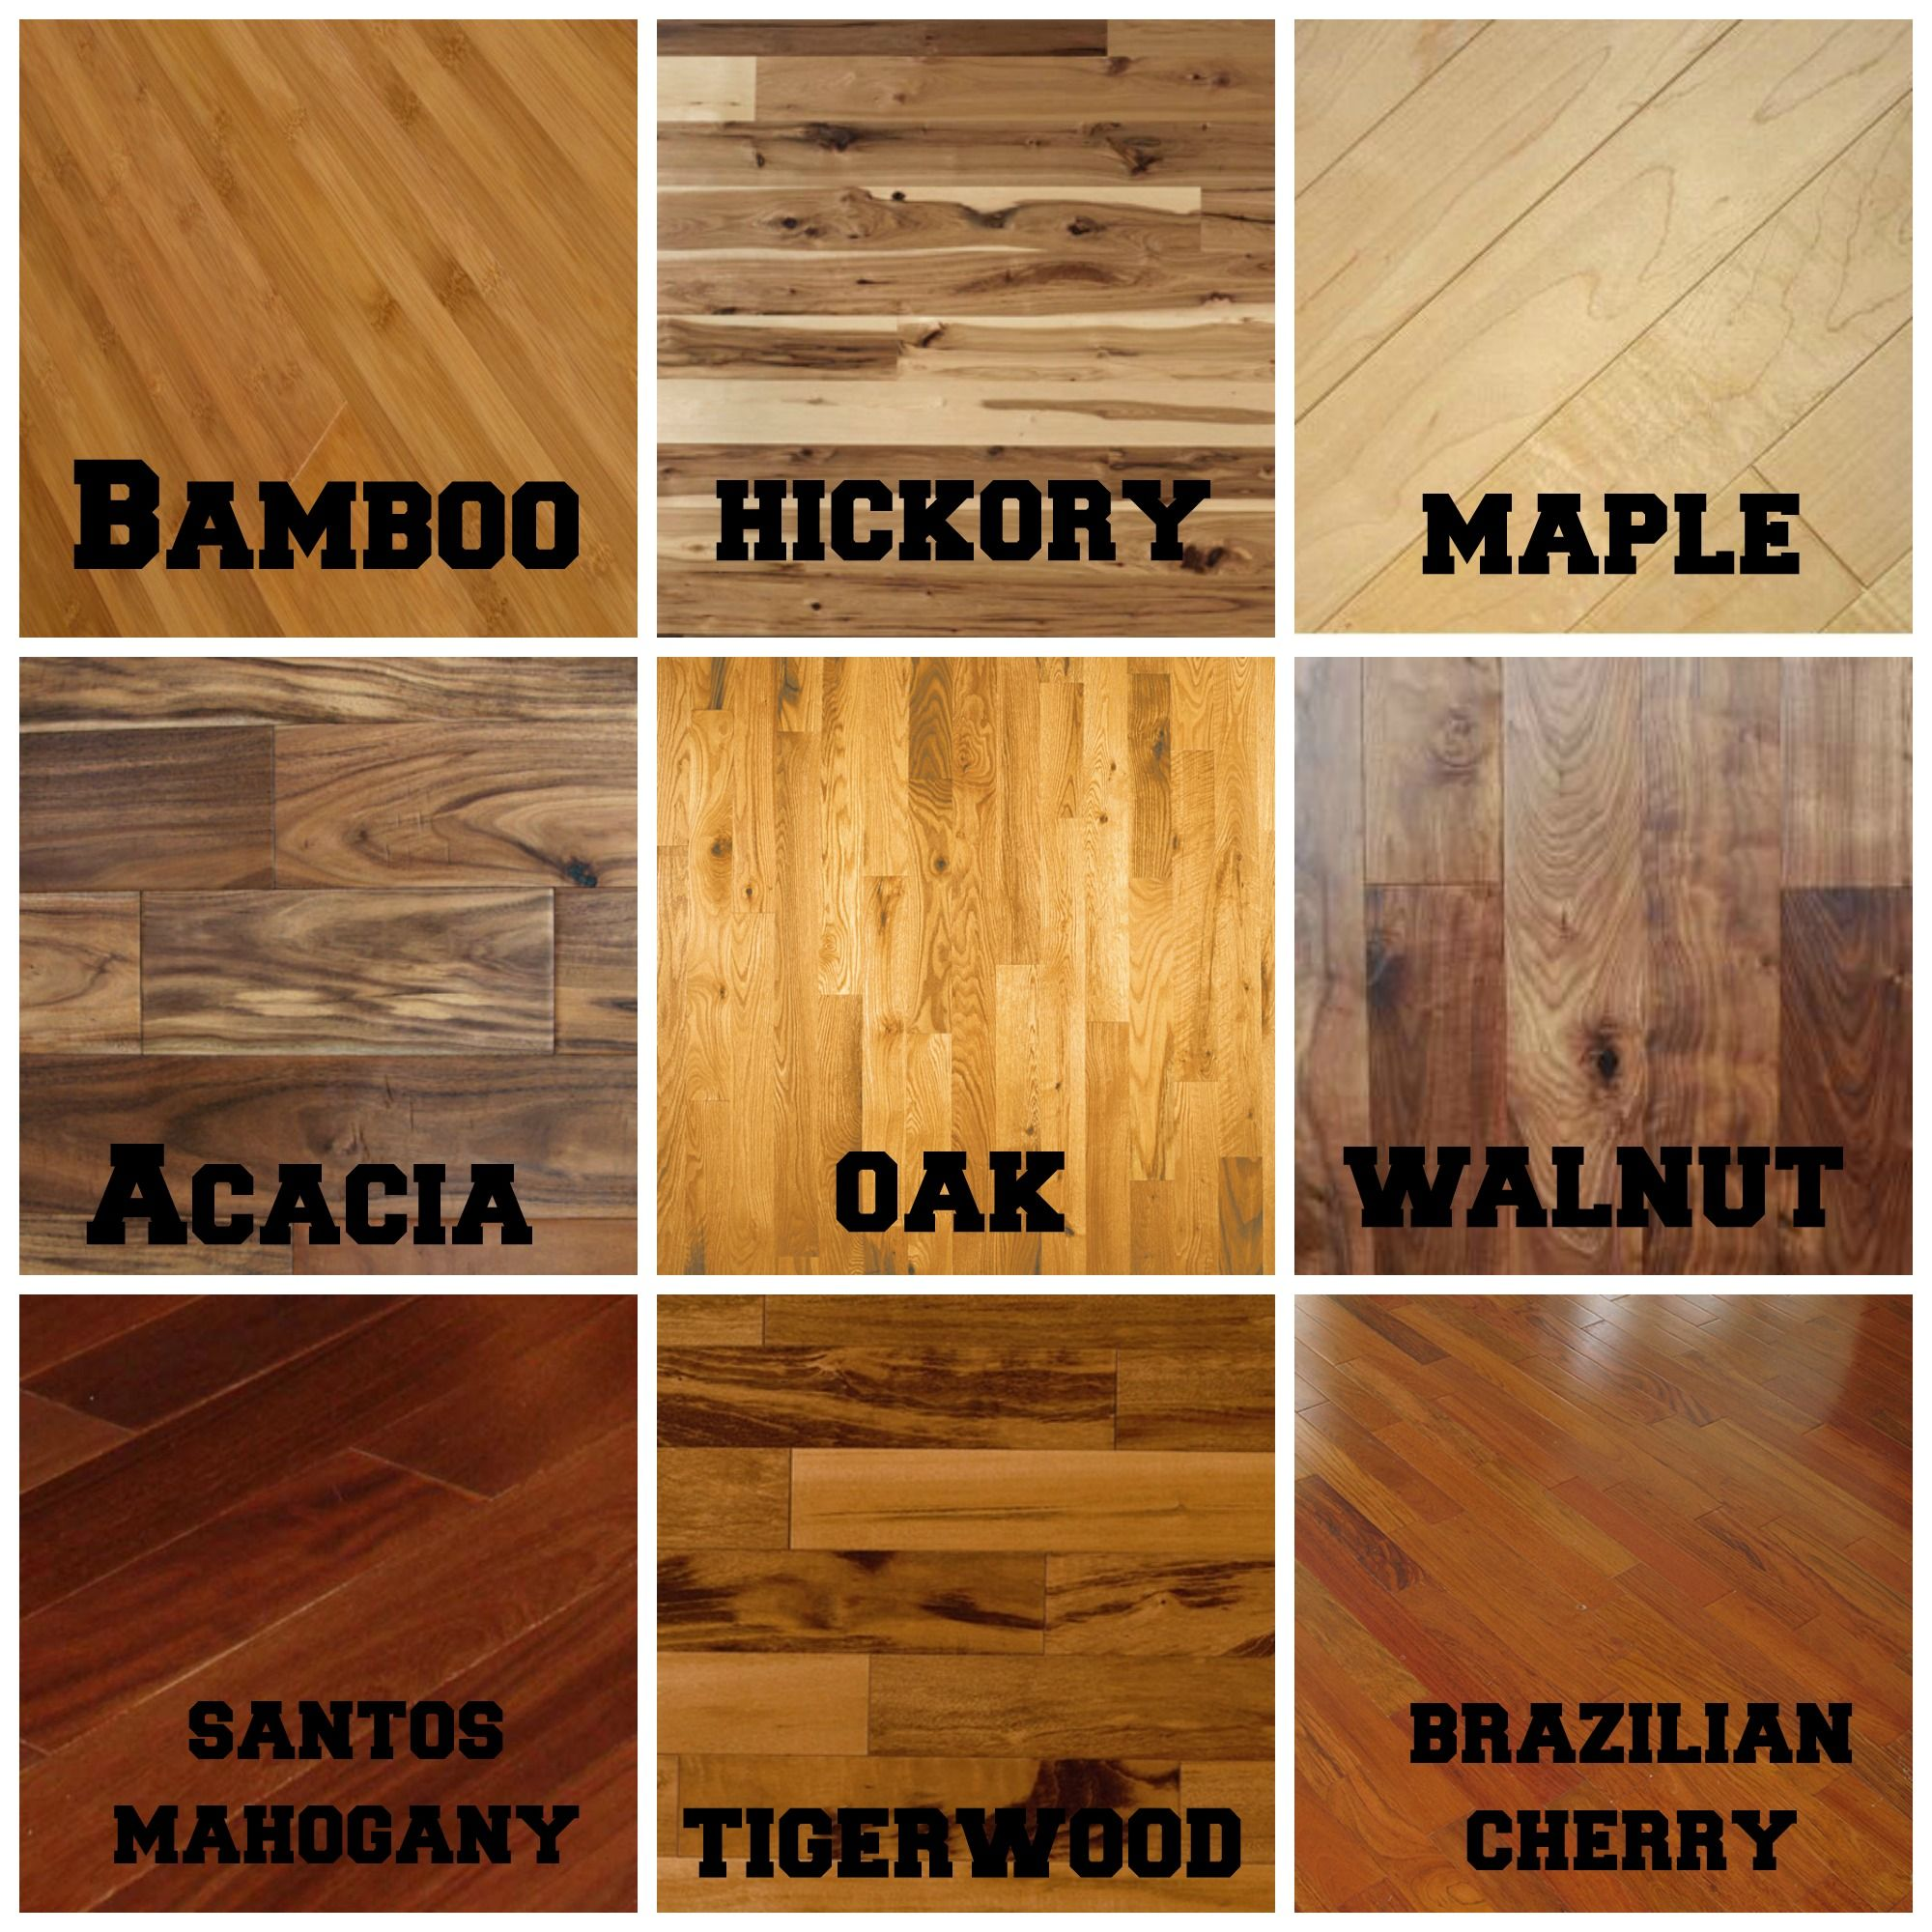 Hardwood flooring types wood design inspiration 23818 for Hardwood floors examples